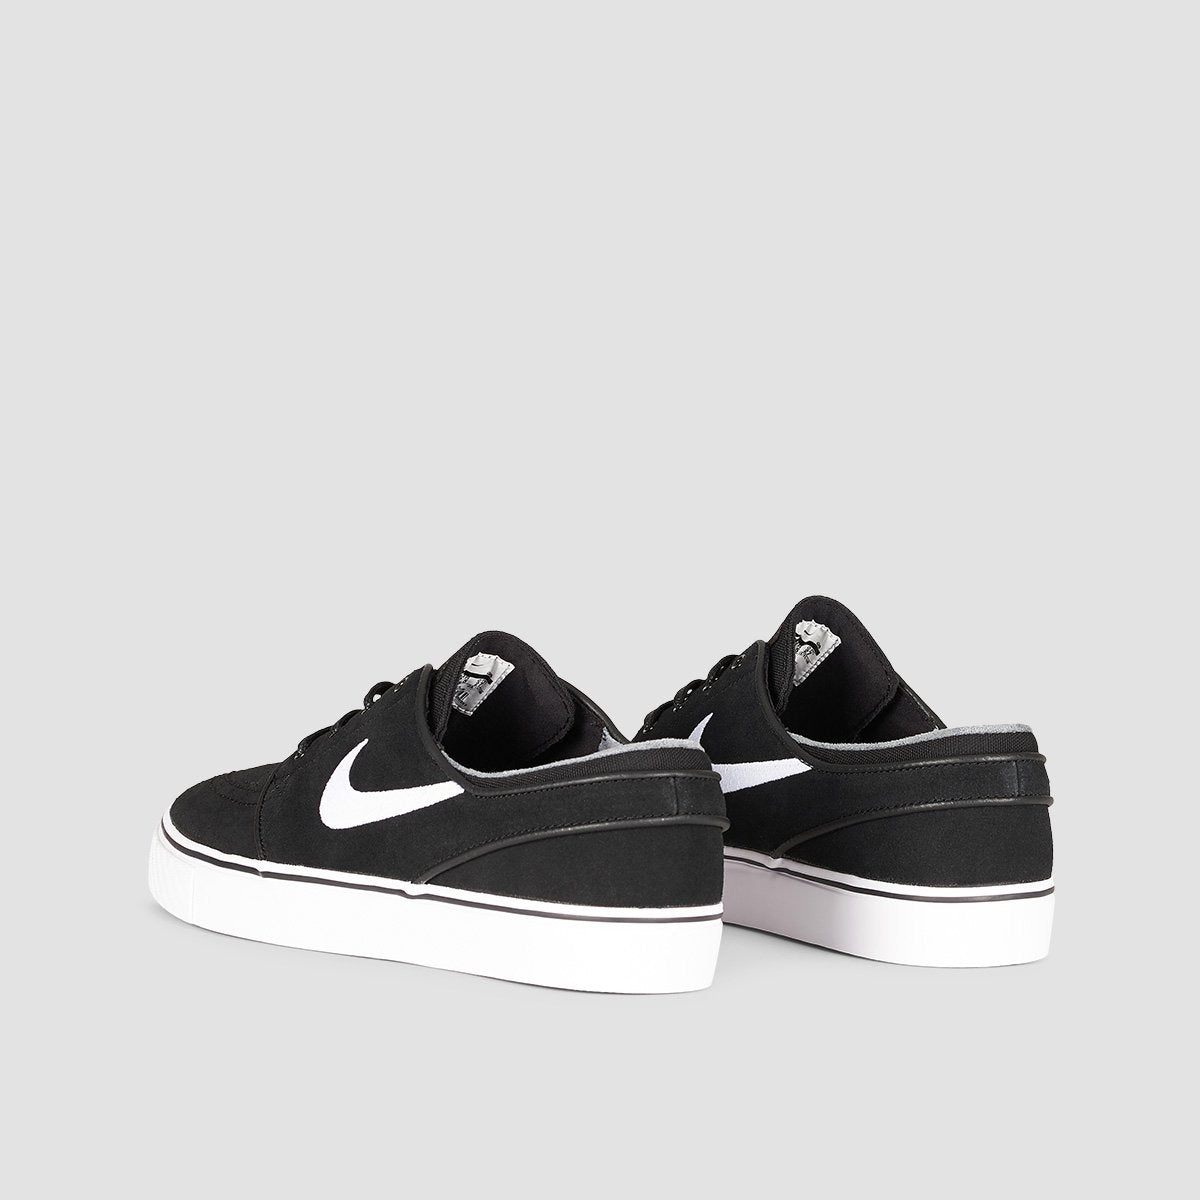 Nike SB Zoom Stefan Janoski Black/White/Thunder Grey/Gum Light Brown - Unisex L - Footwear